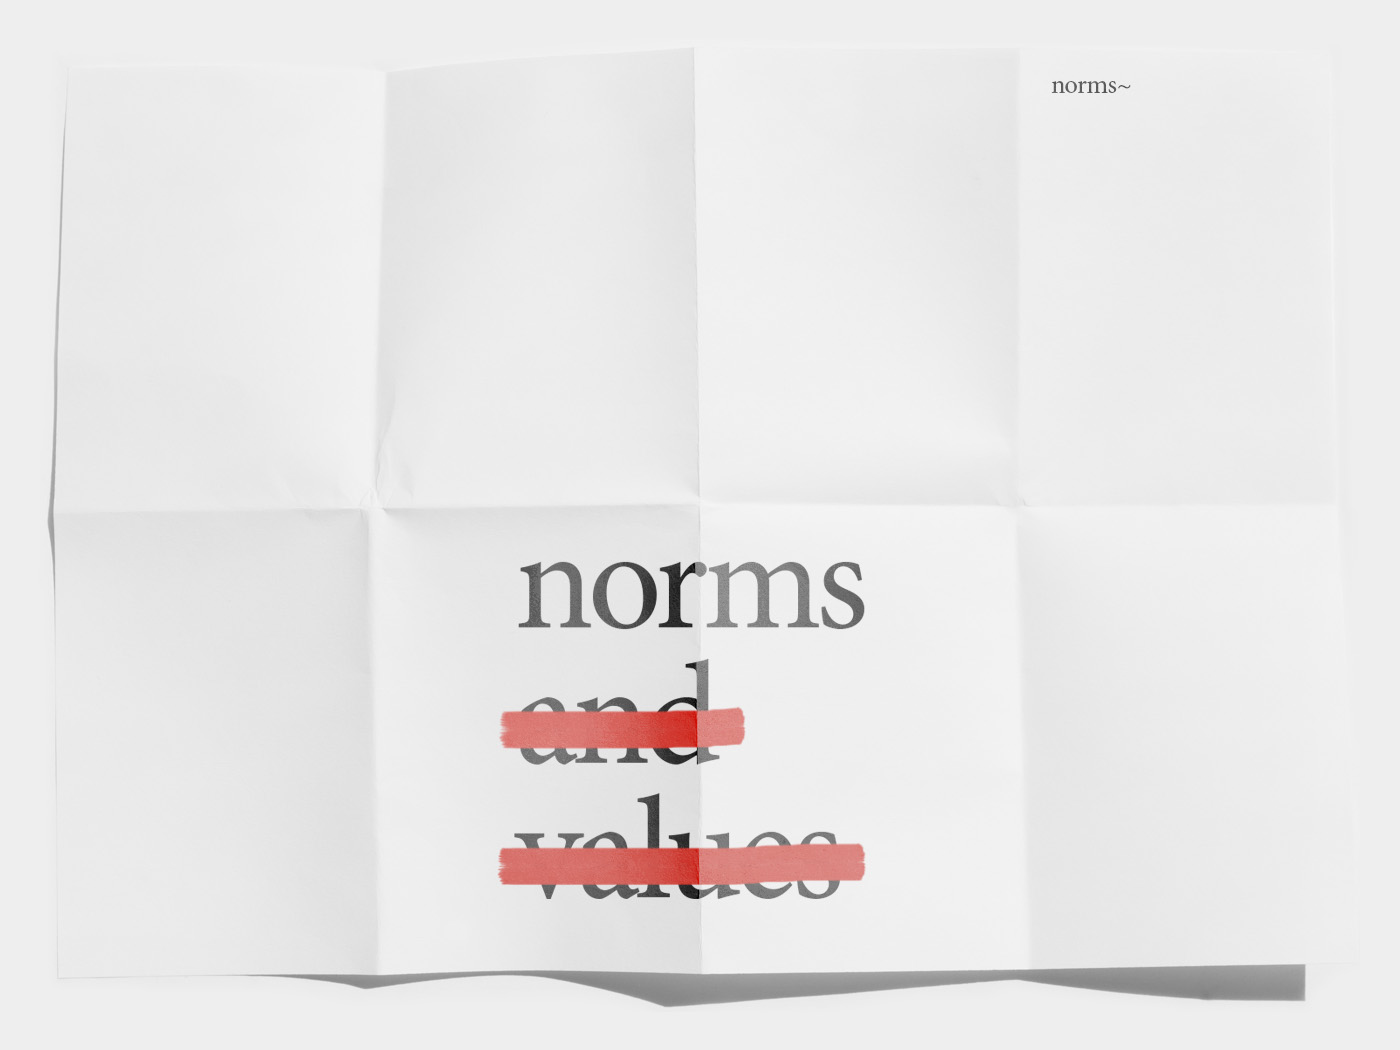 1norms